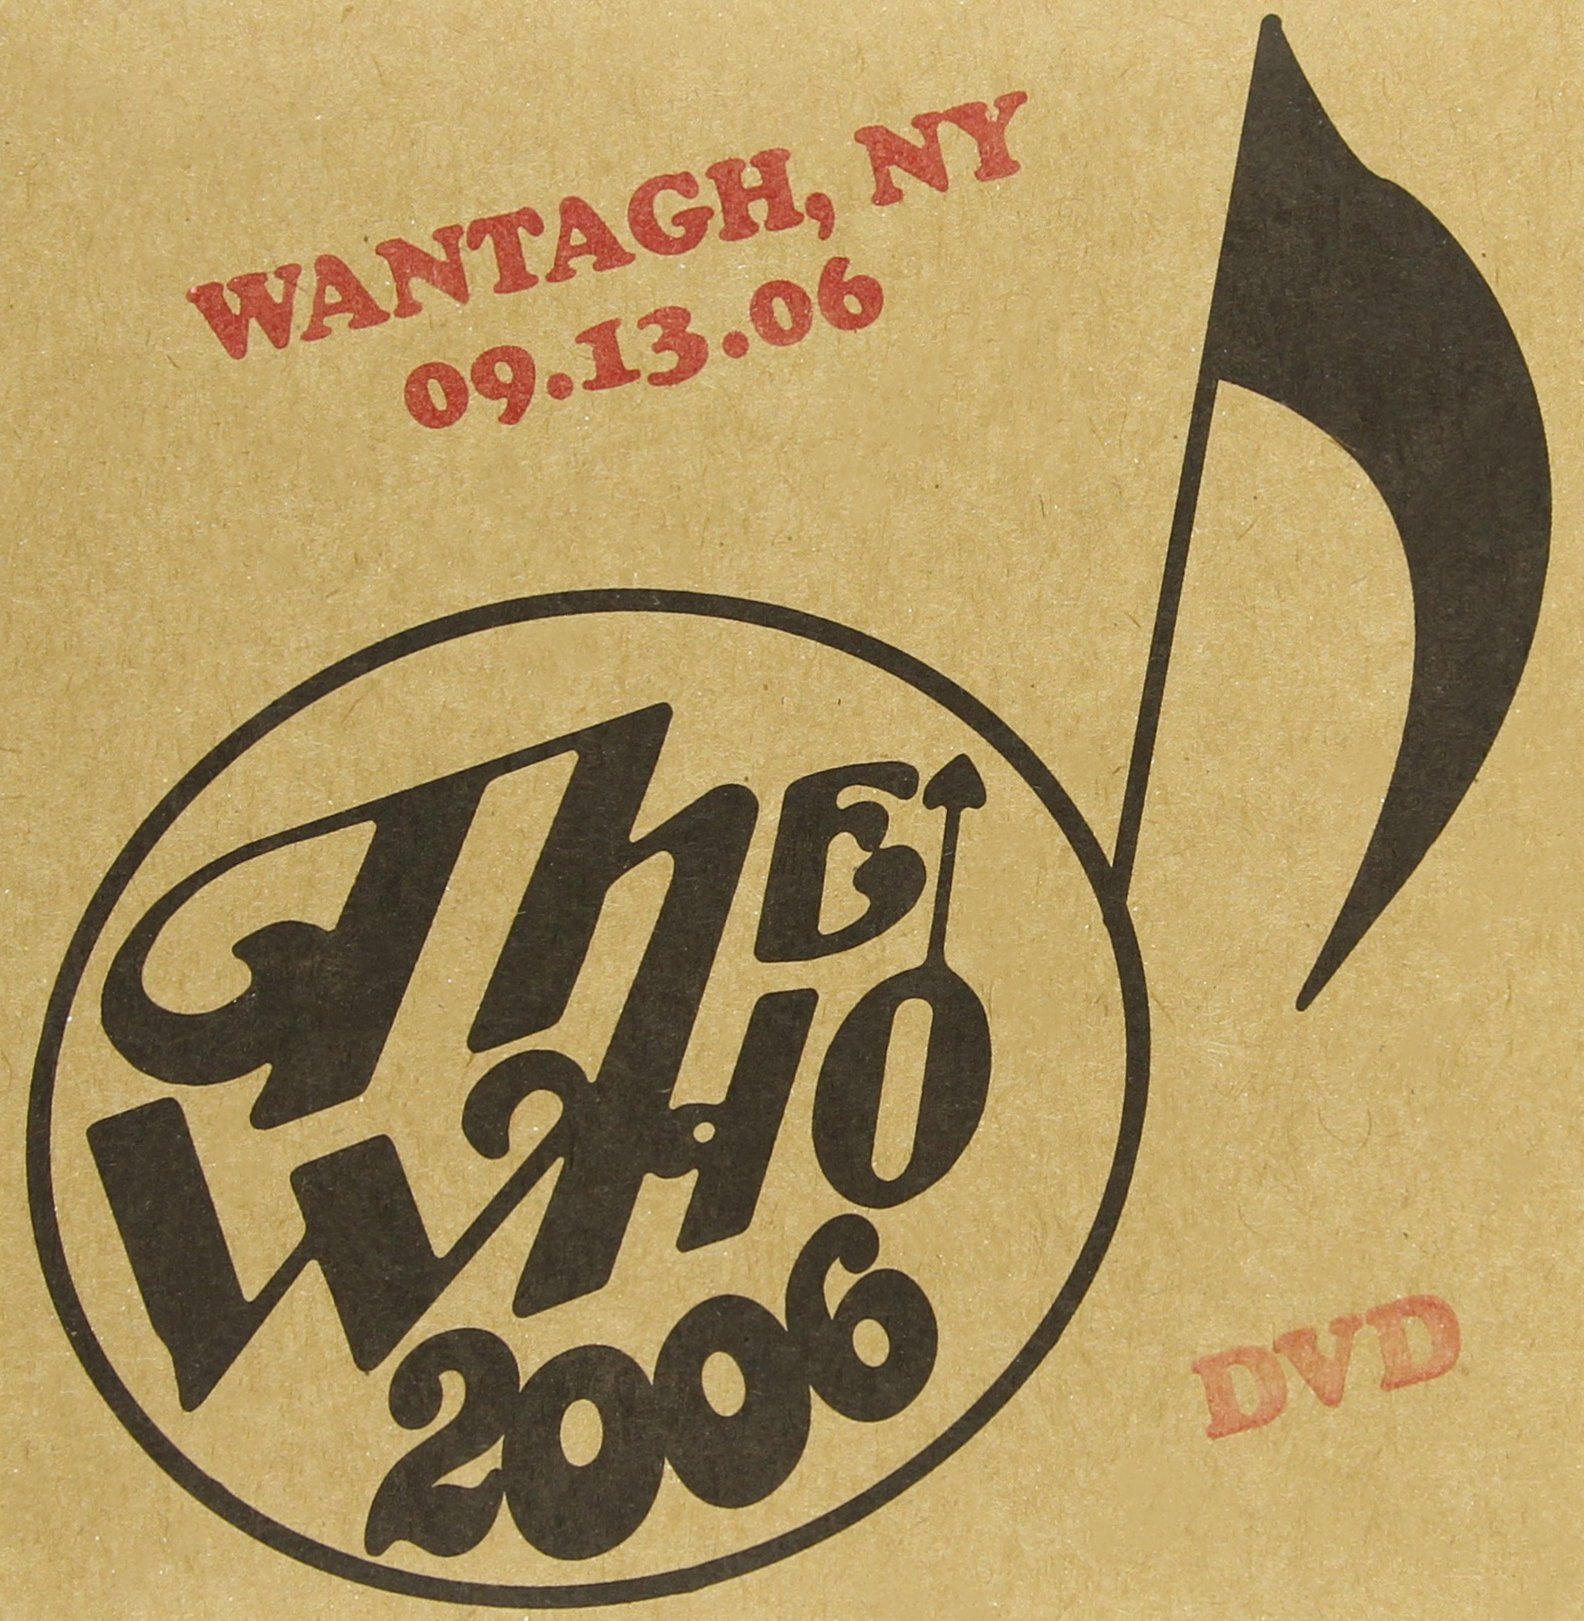 DVD : The Who - Live: Wantagh NY 09 / 13 / 06 (Poster)